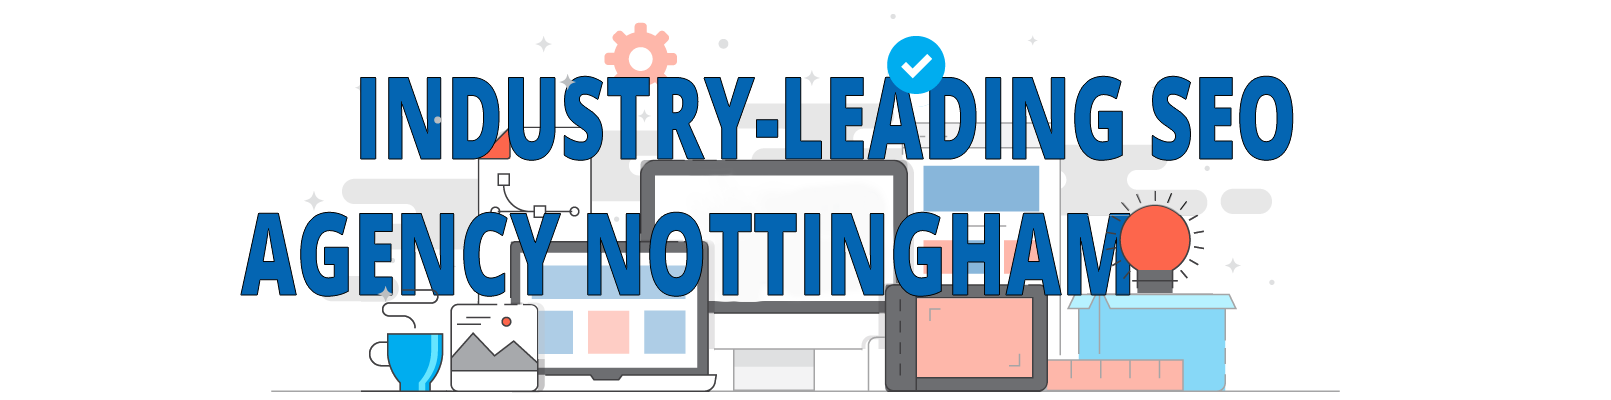 seek social industry leading seo agency nottingham header with transparent background